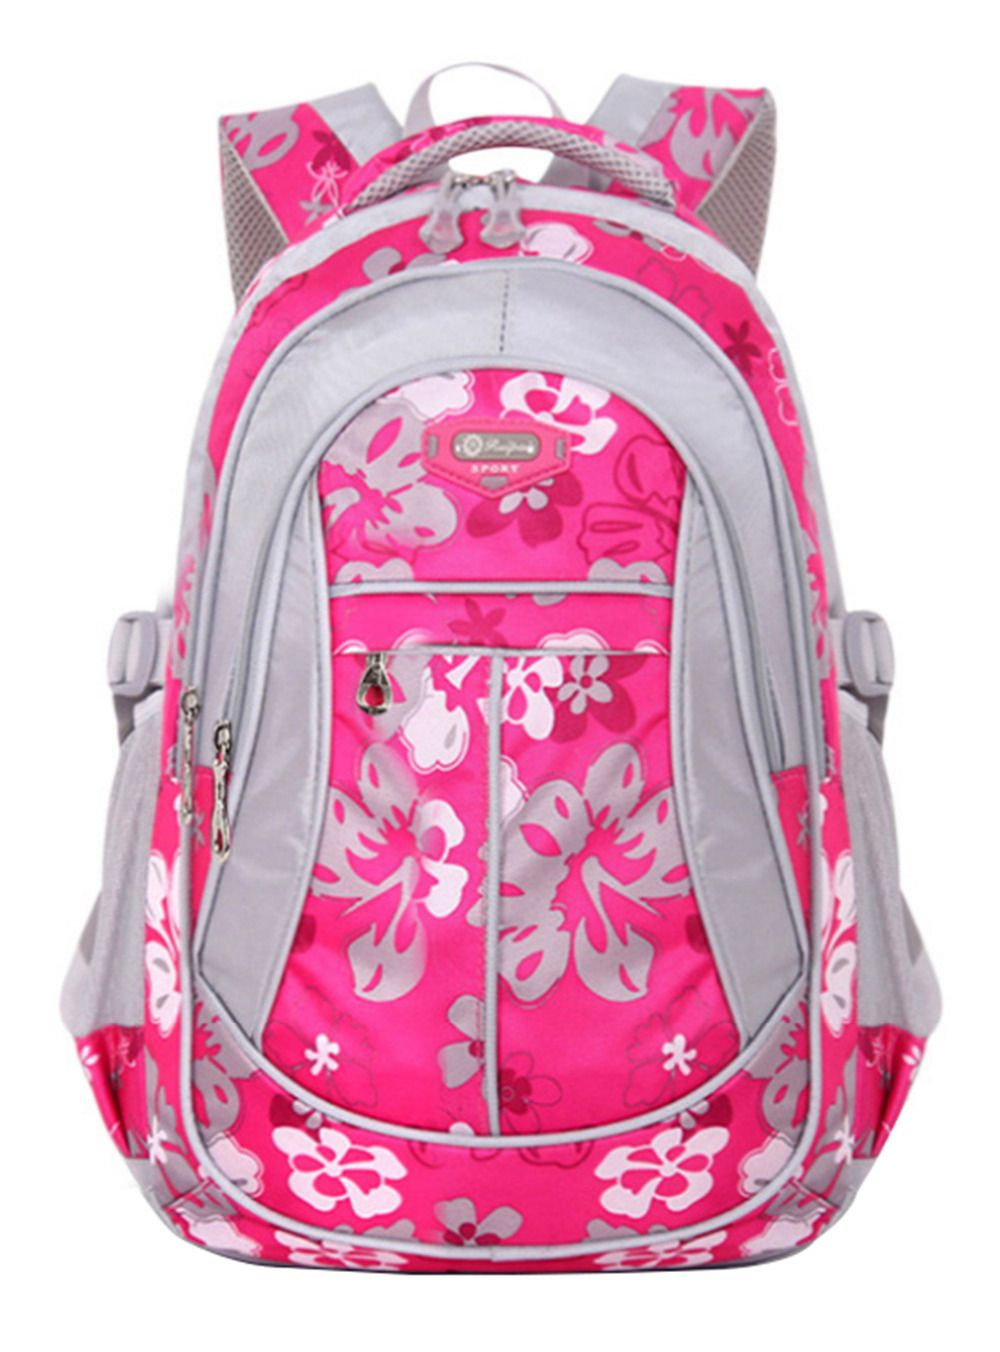 520094cf0399 Children School Bags For Girls Boys New Floral Printing Backpack Kids Book  Bag Primary School Student